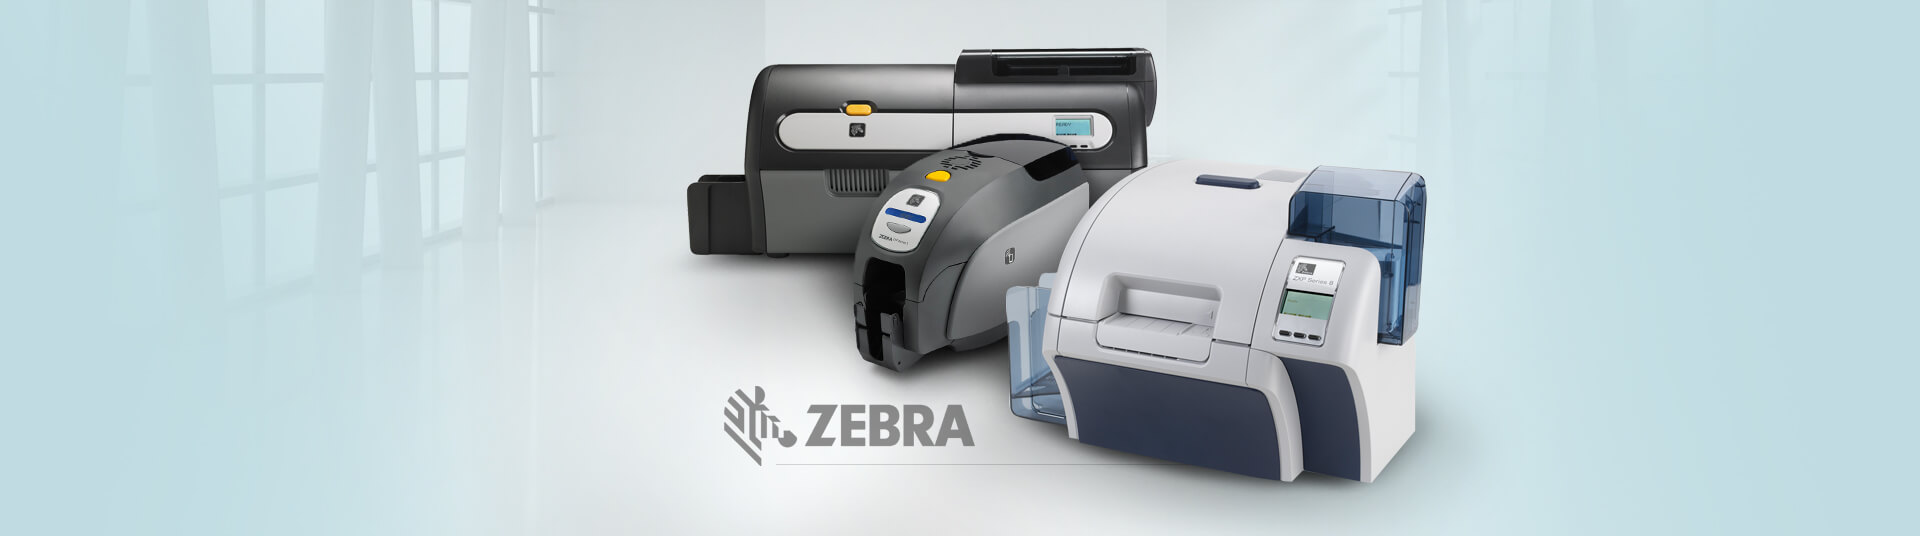 Zebra ID Card Maker